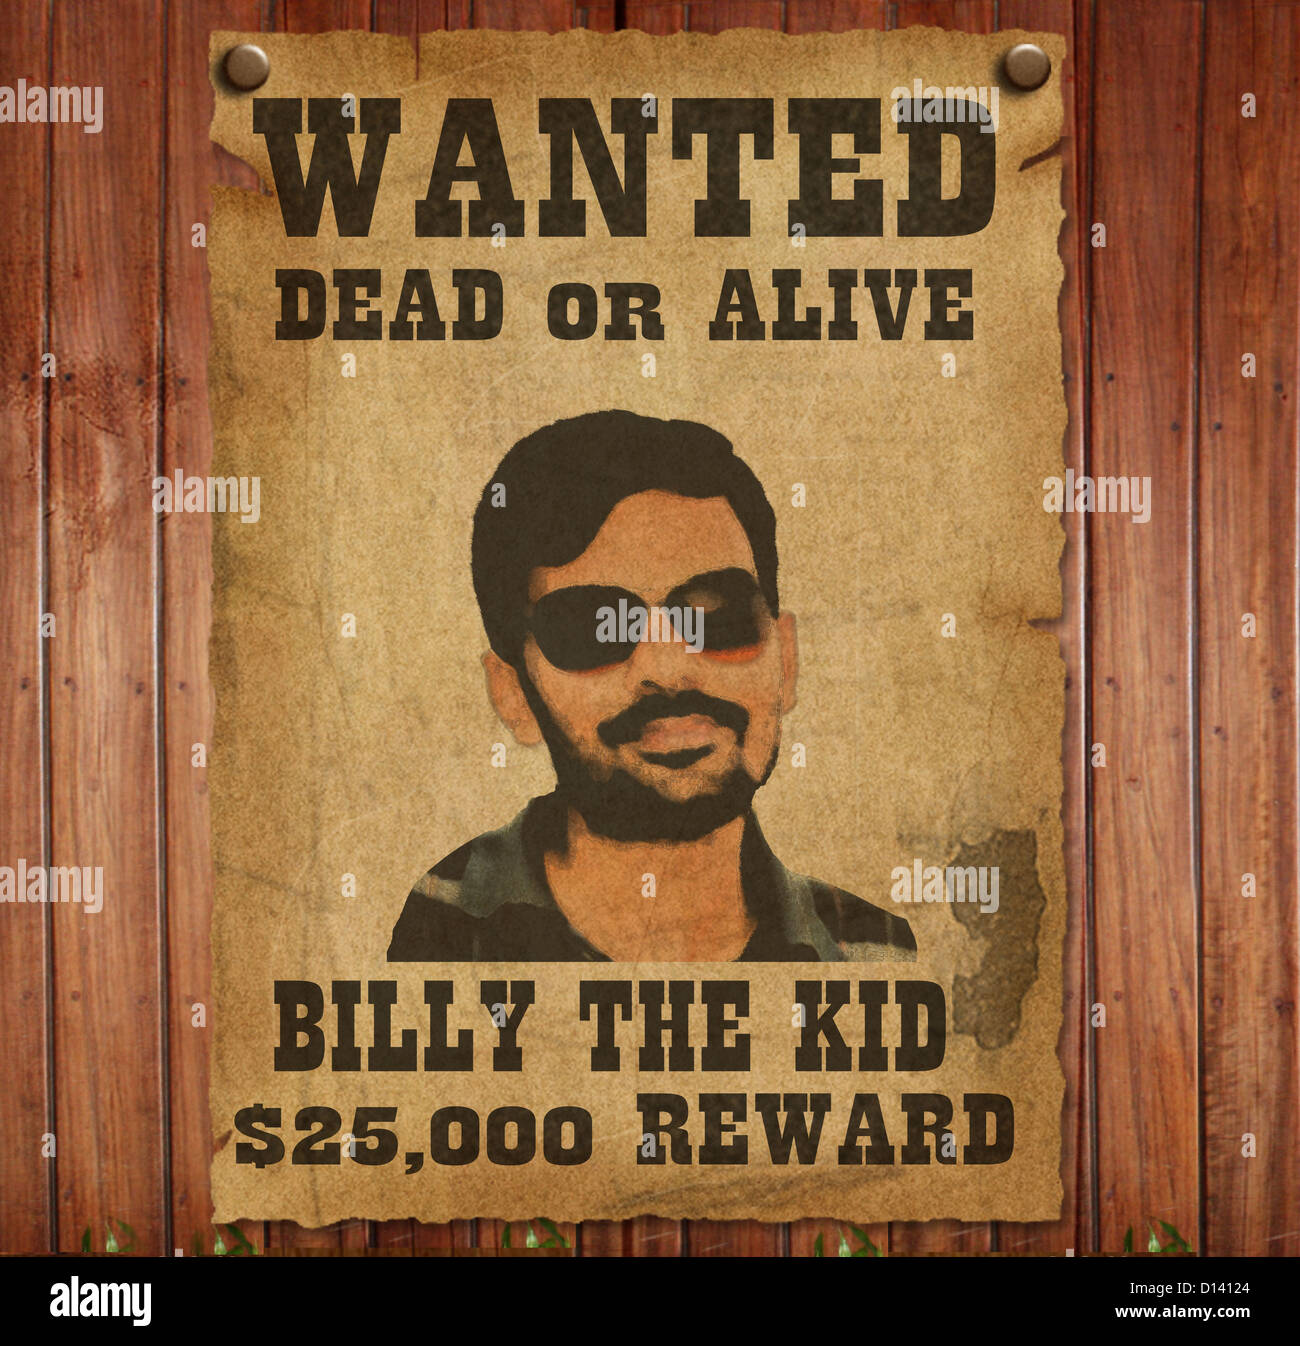 Wanted Poster Template With Bounty Reward  Missing Reward Poster Template